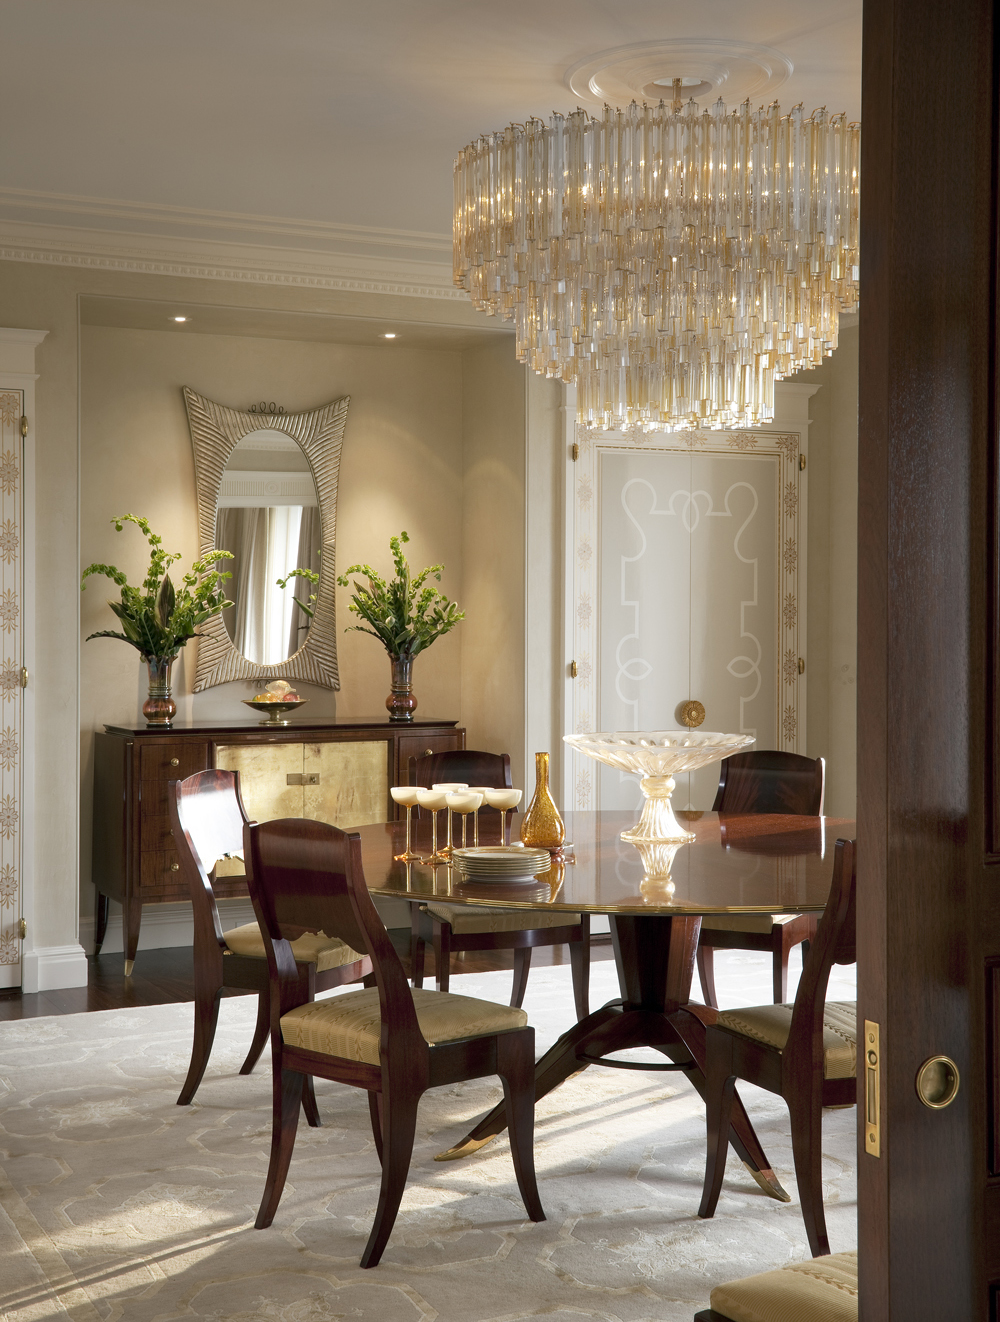 LSI-web-fifth-ave-interior-dining-room-4A.jpg